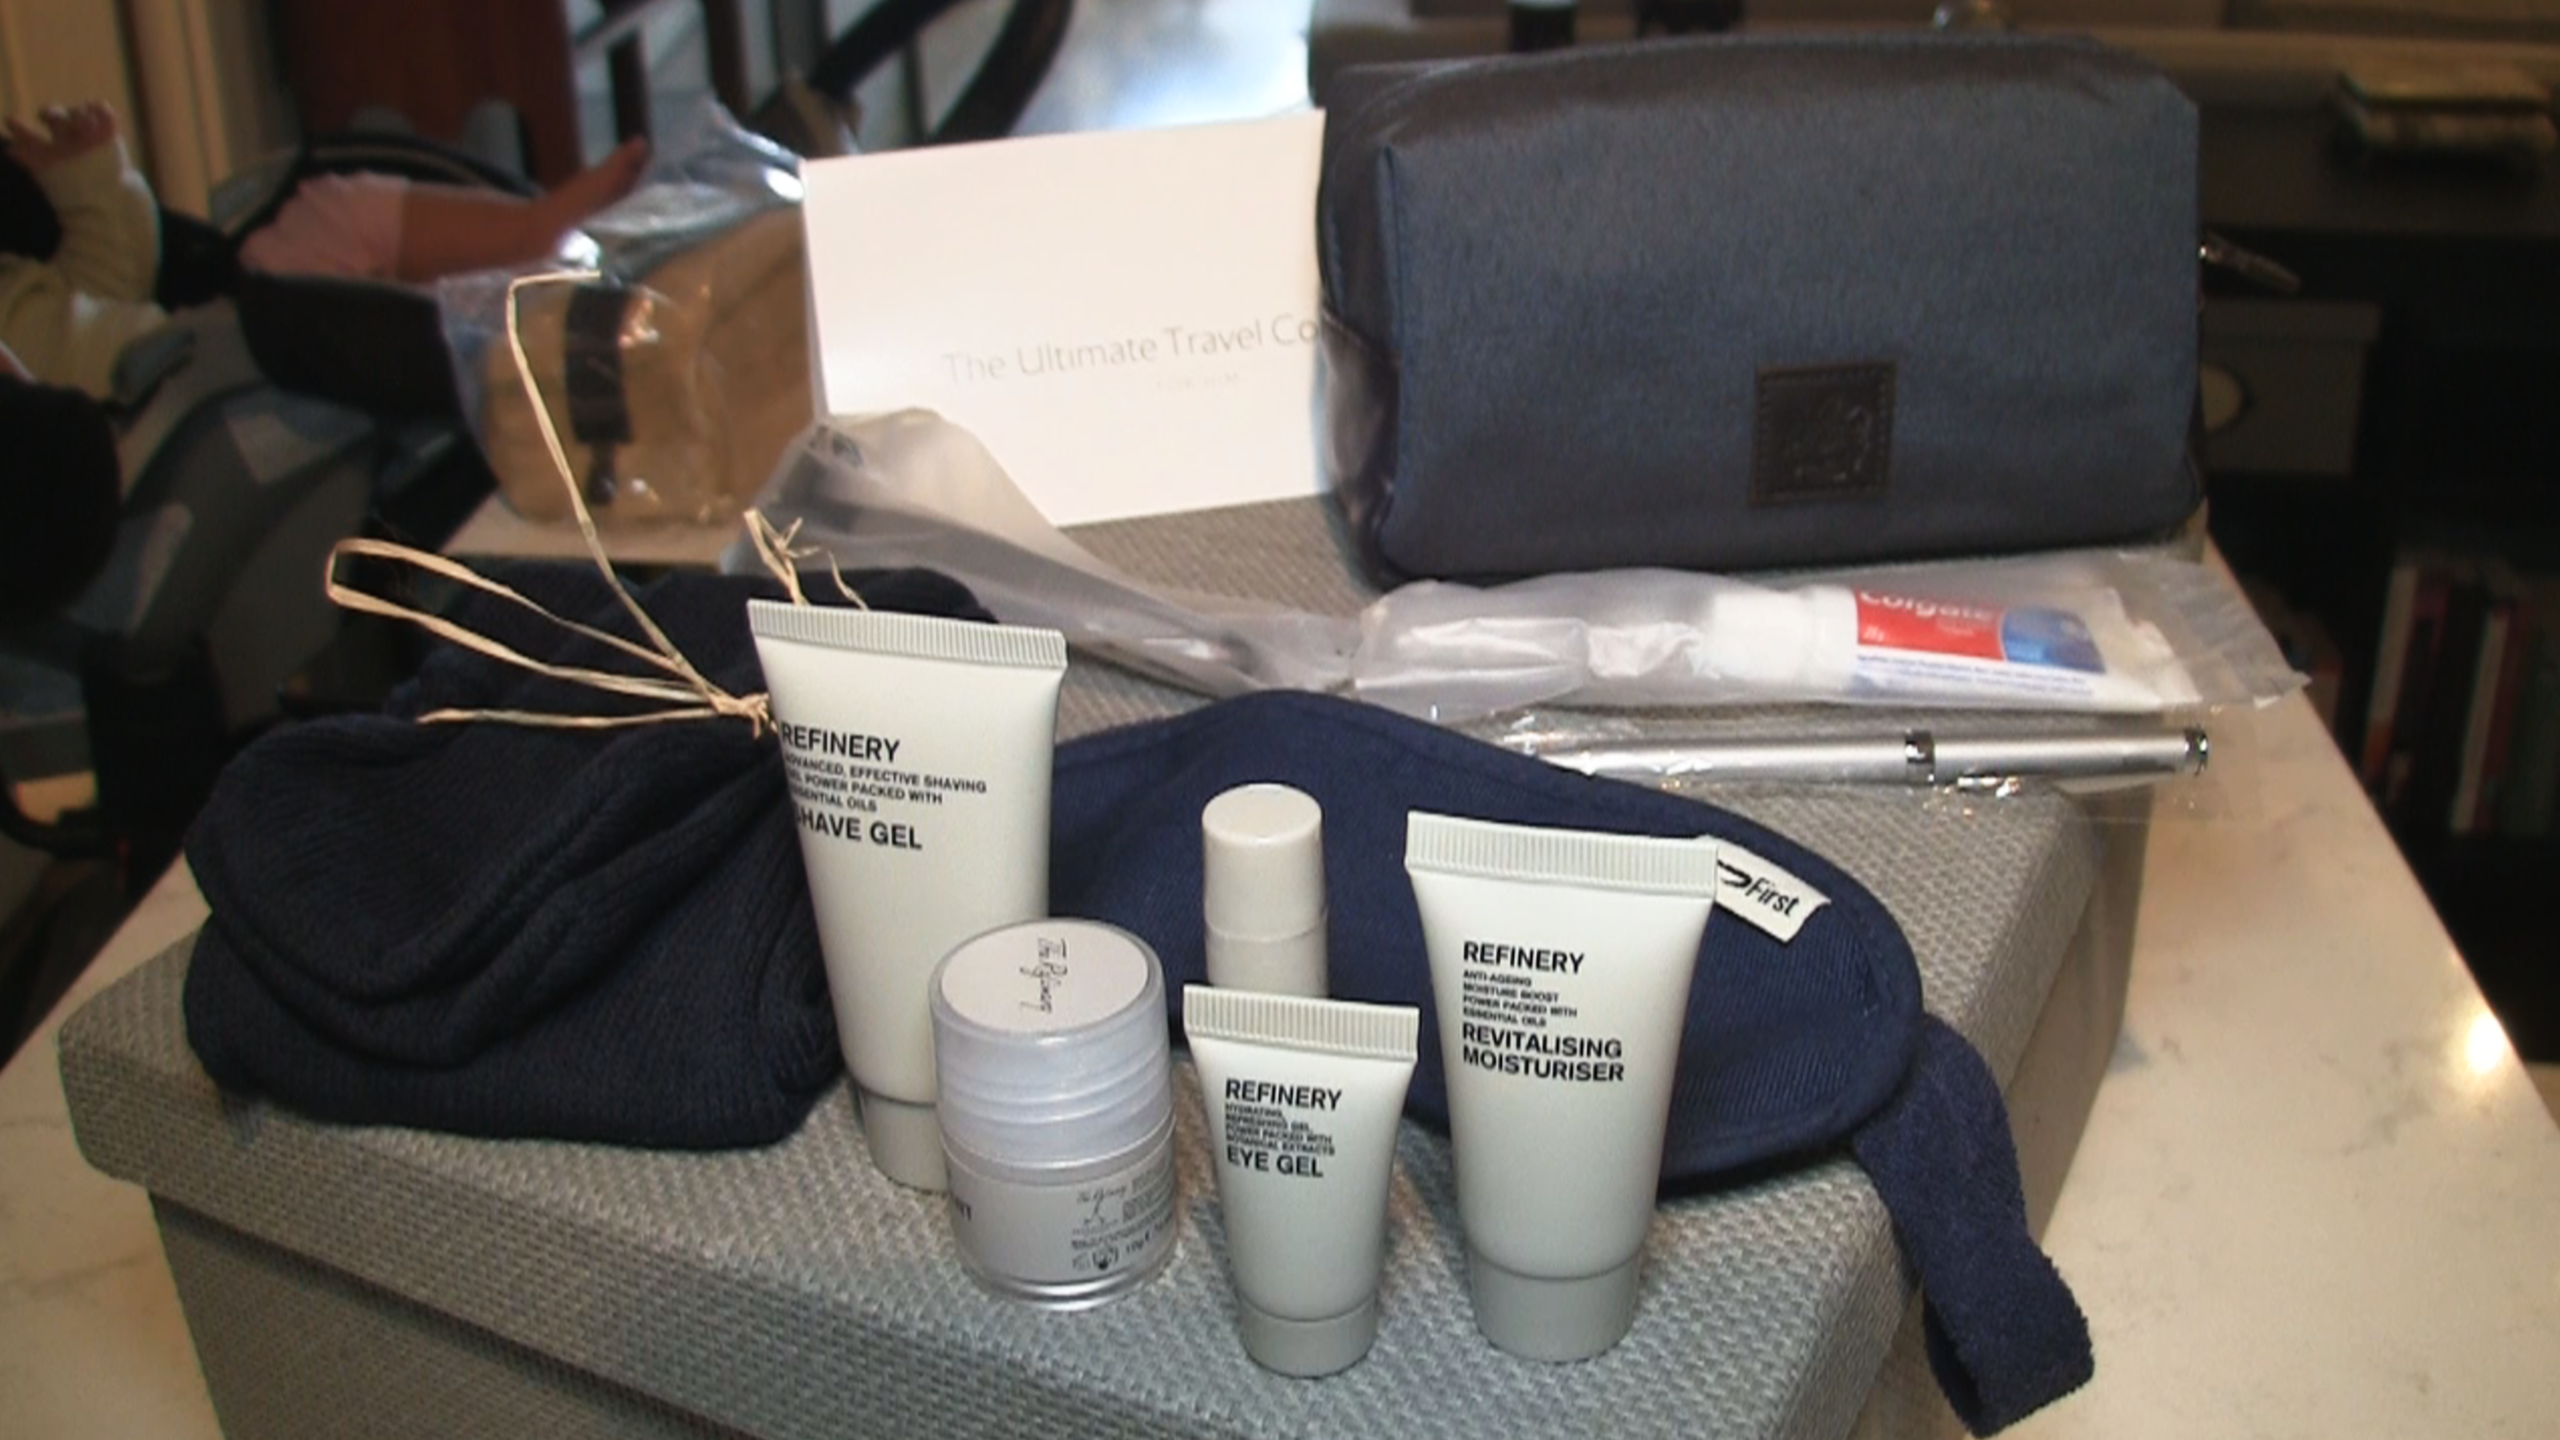 British Airways First Class Amenity Kit contents.